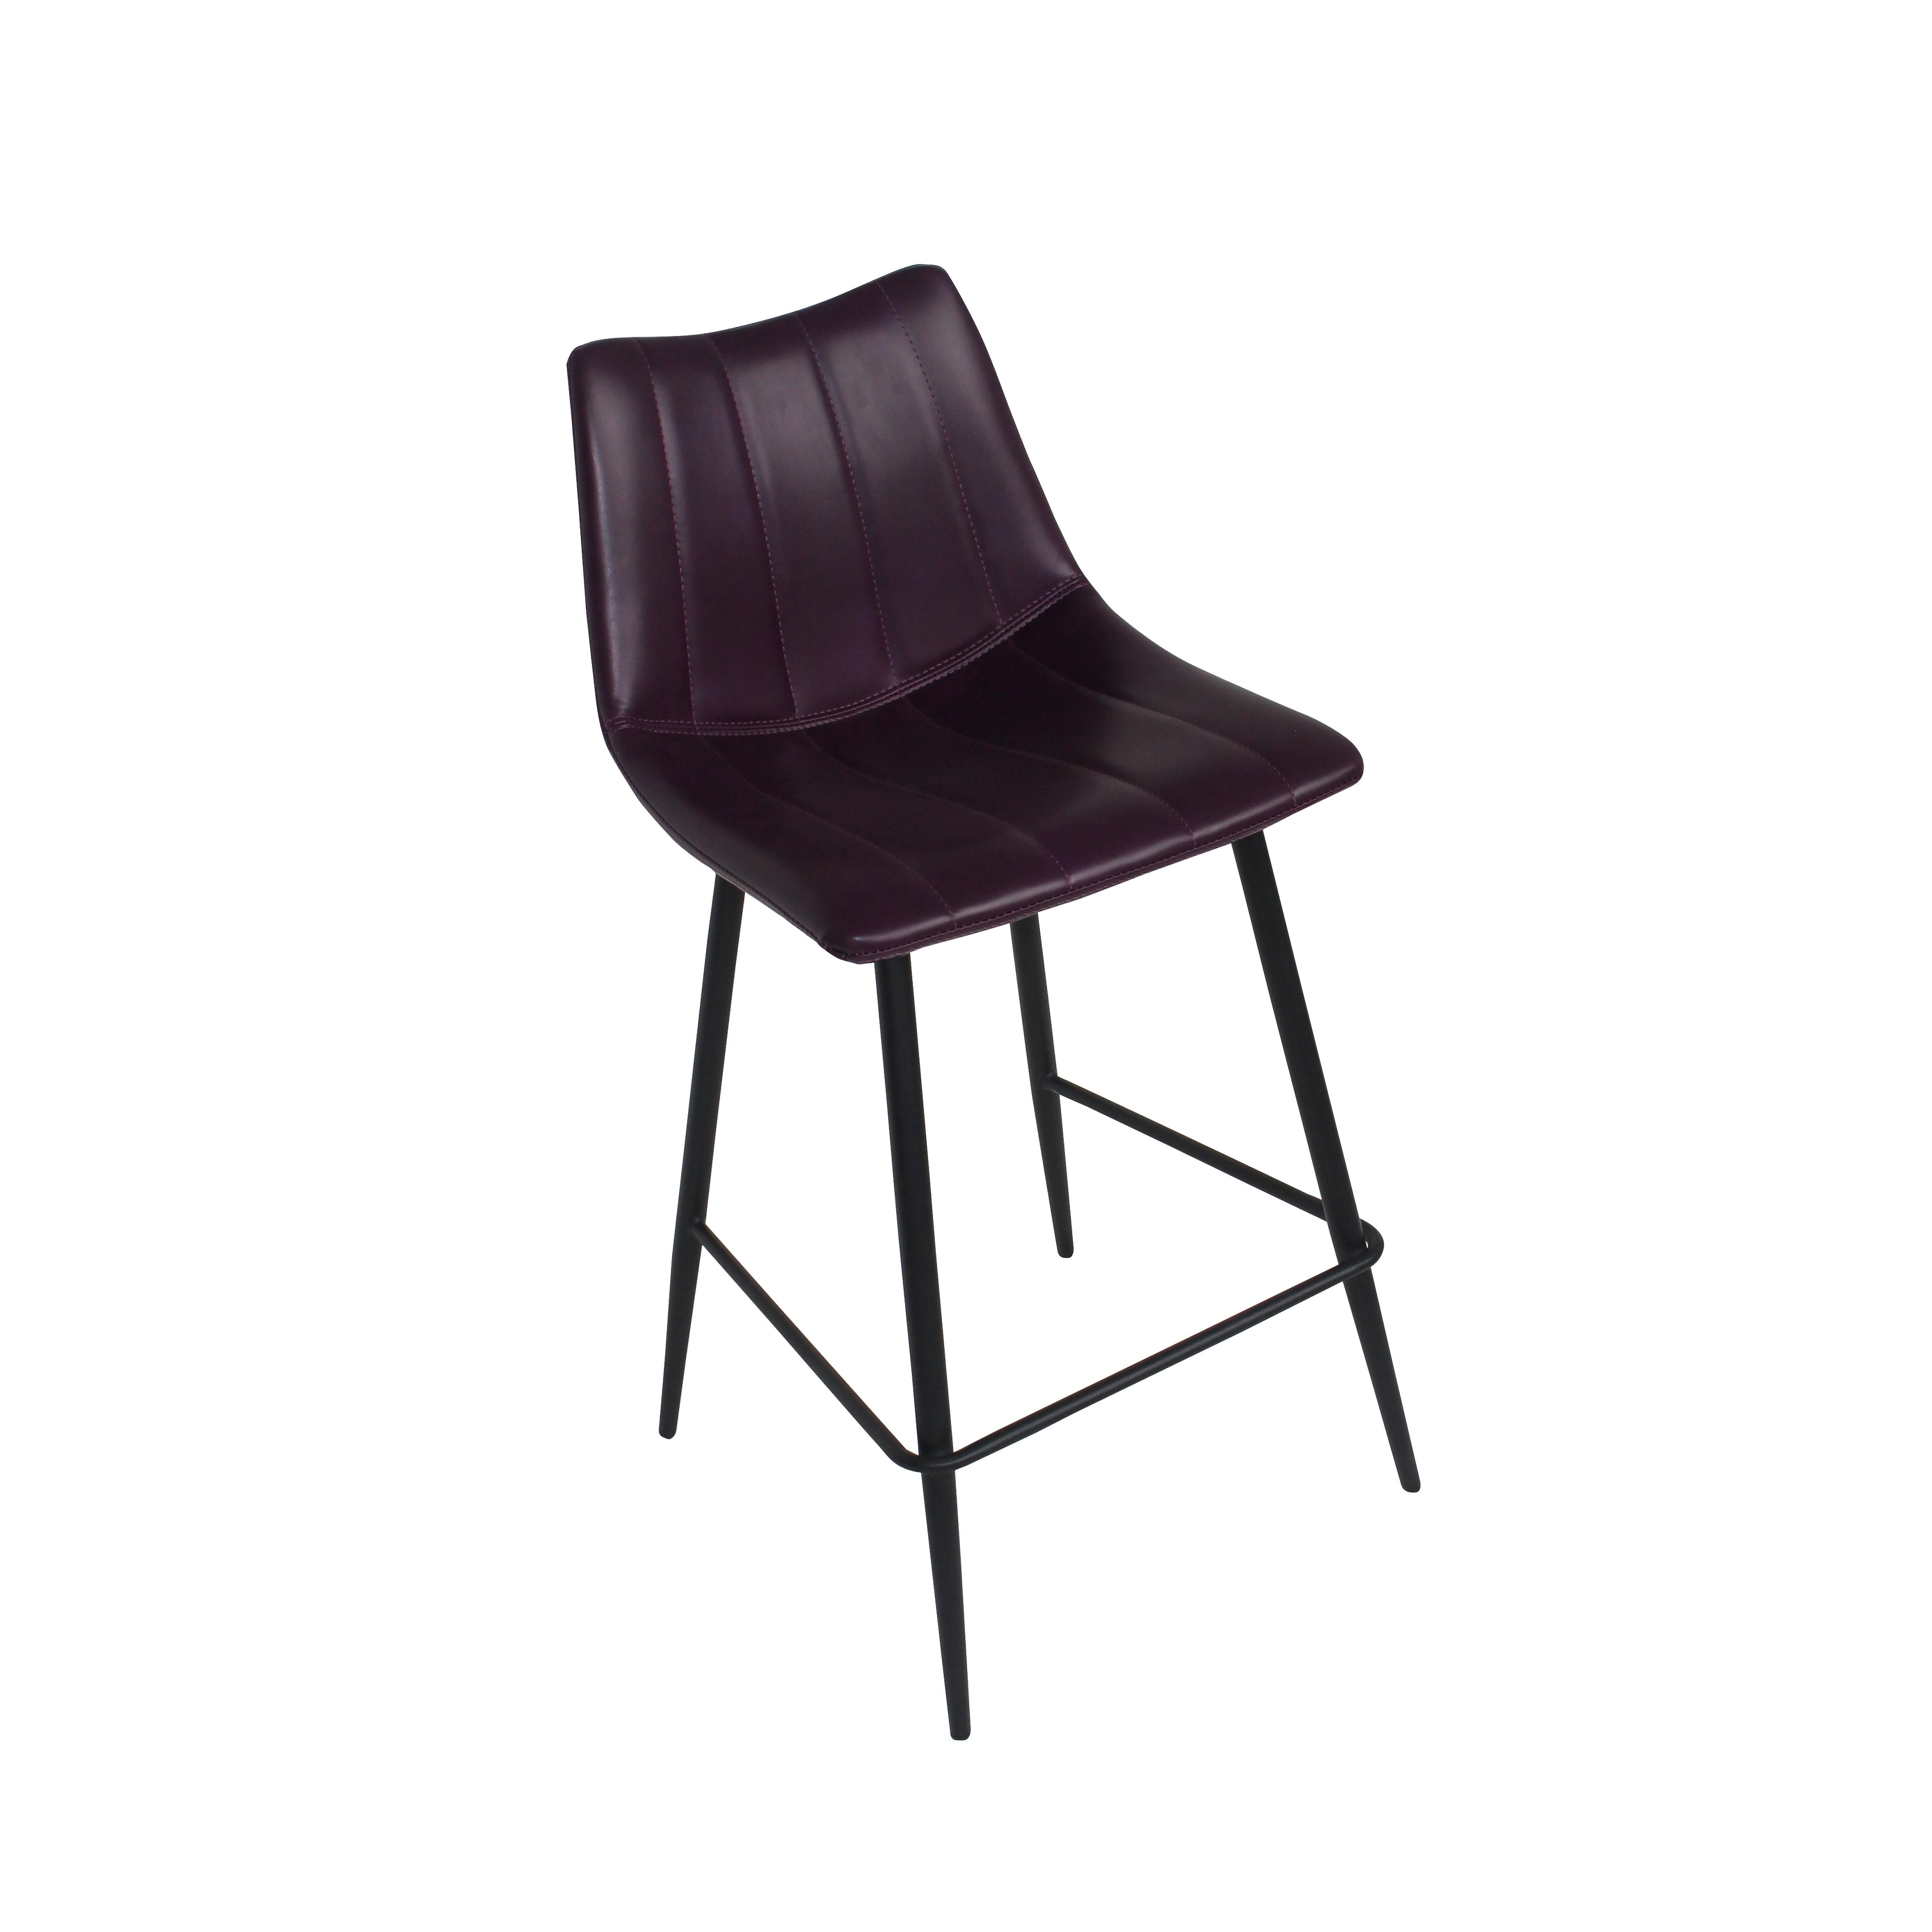 Shop aurelle home purple barstool set of 2 on sale free shipping today overstock com 18763163